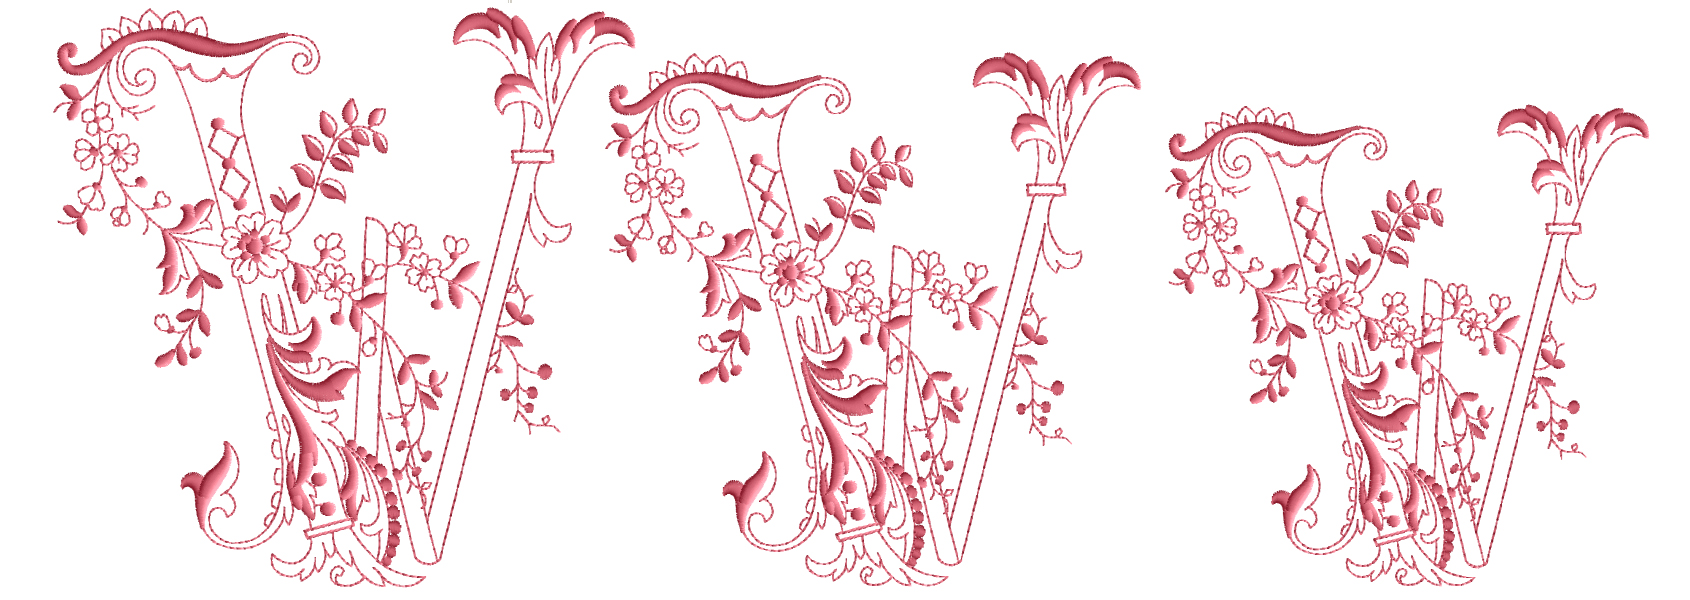 Enlaced-Romance-Embroidery-Designs-Alphabet W-3.jpg